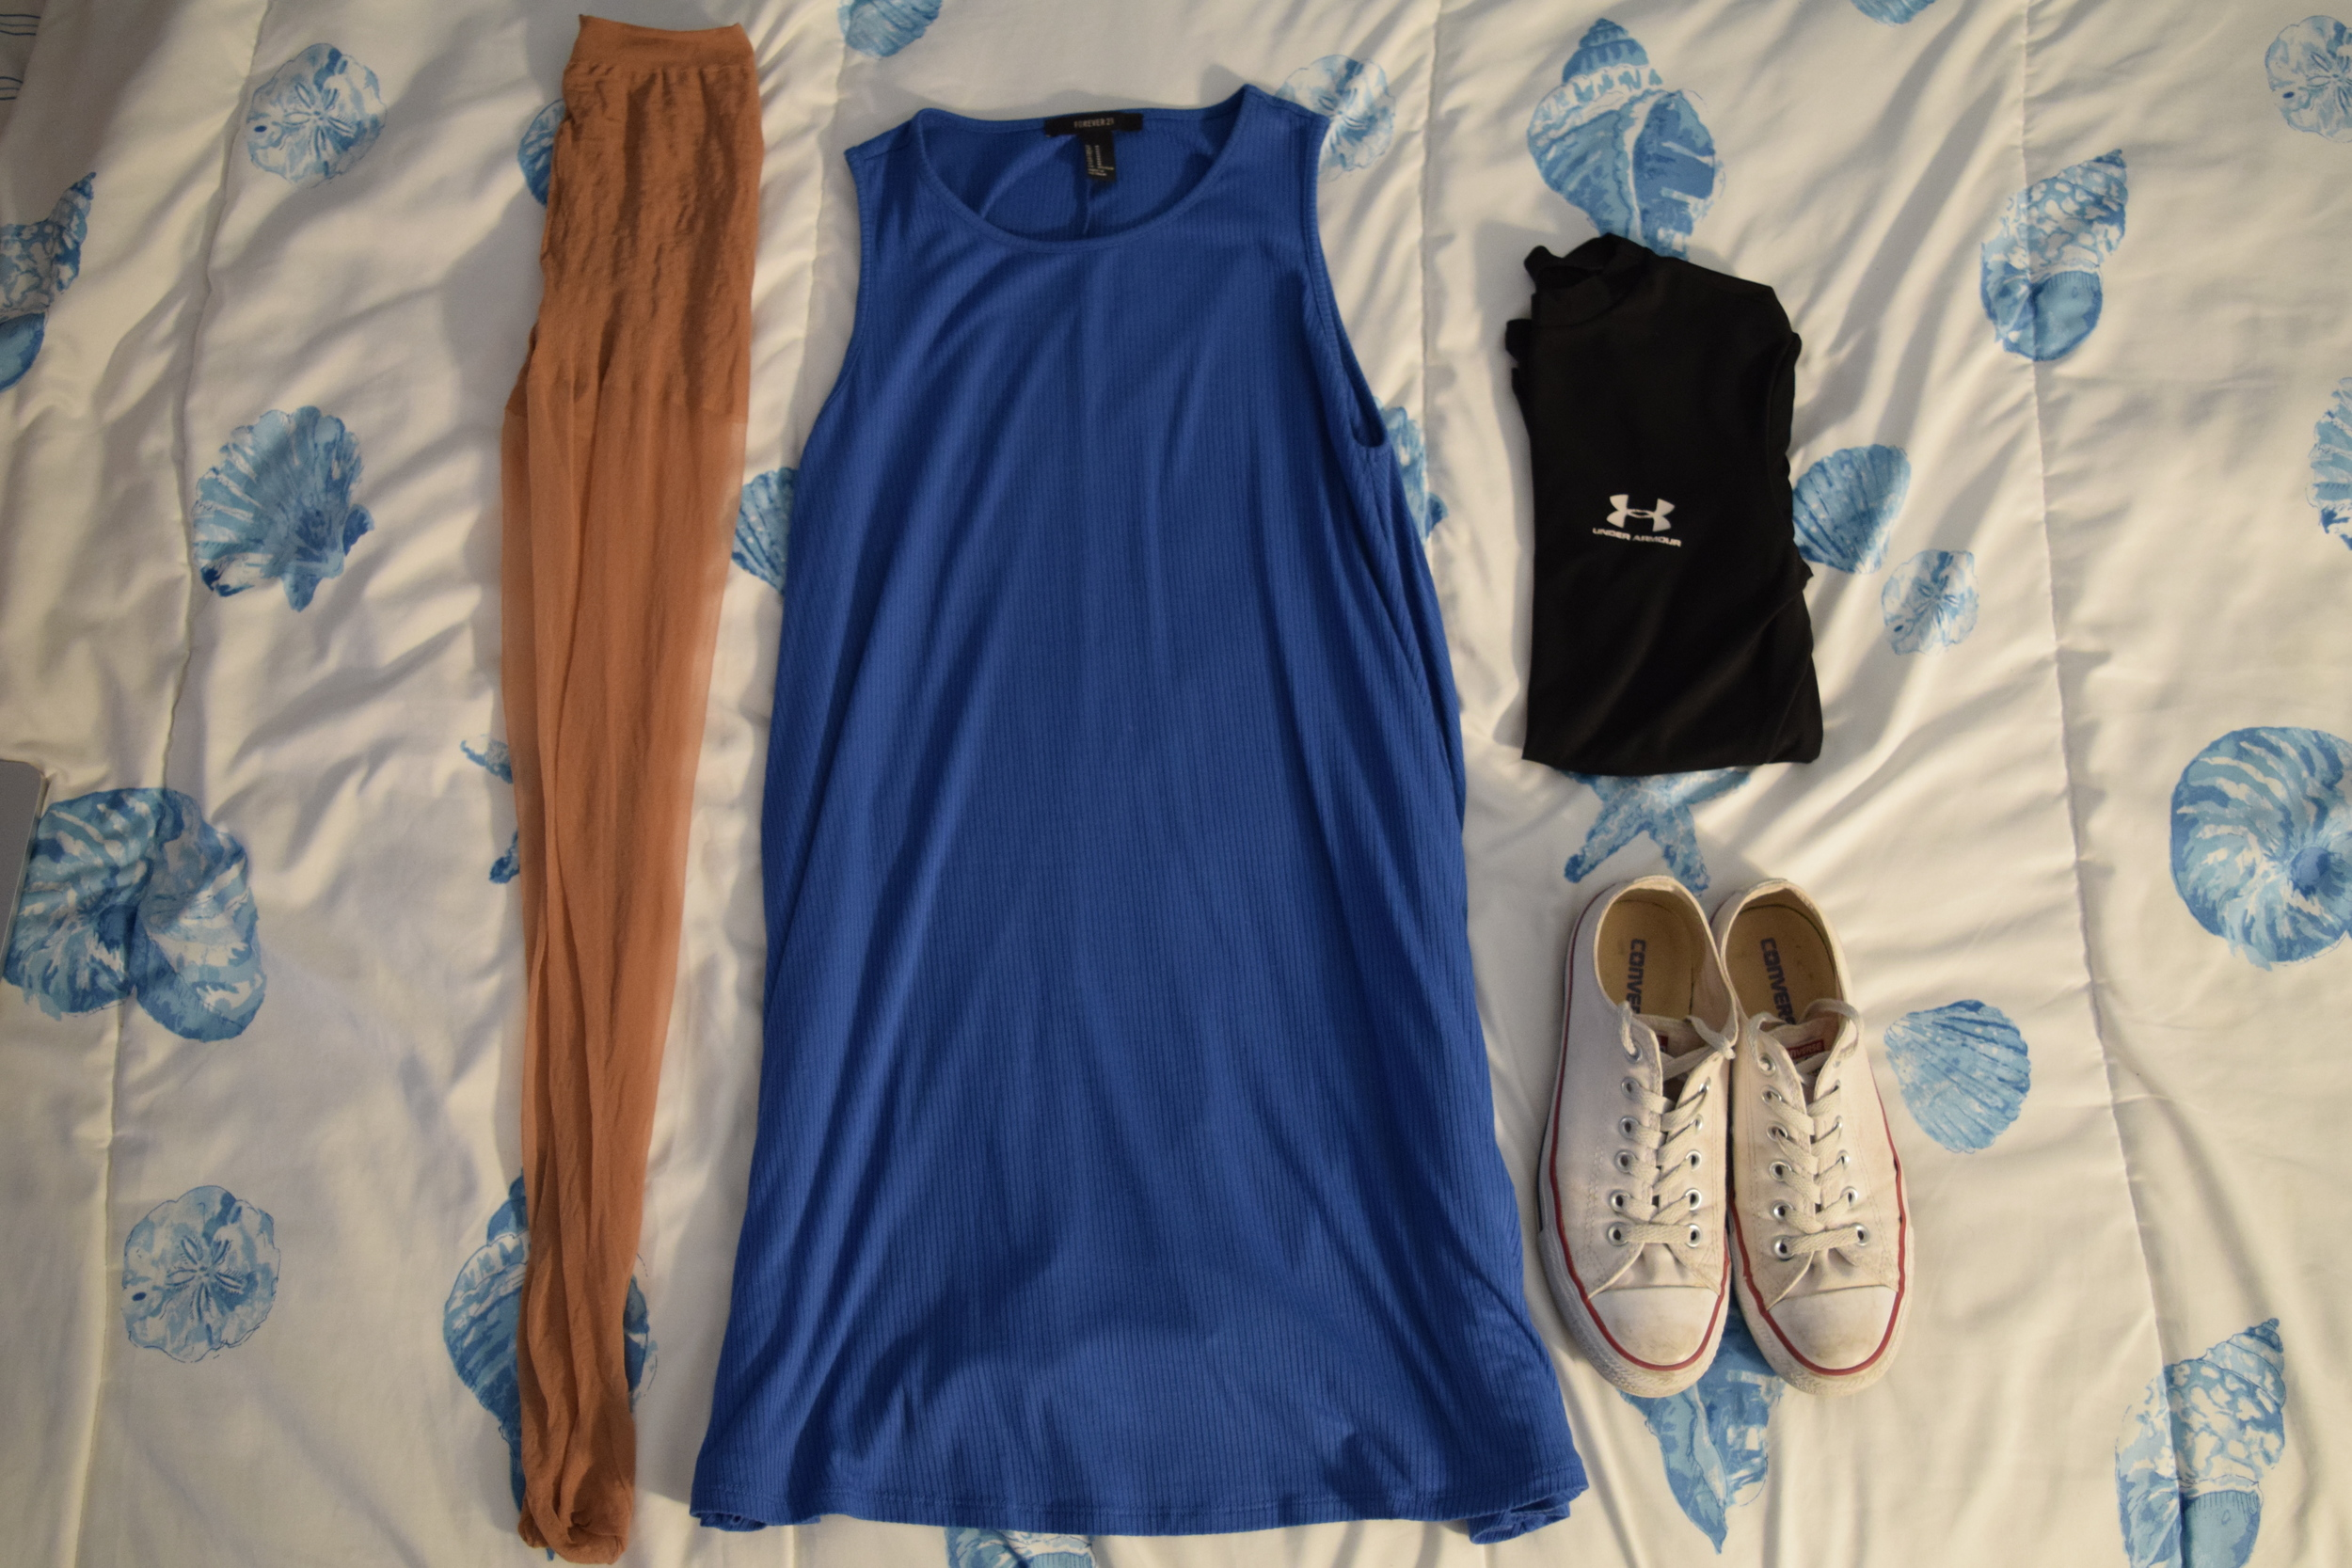 Dress  (similar). Stockings (from CVS).  Undershirt  (similar).  Sneakers .